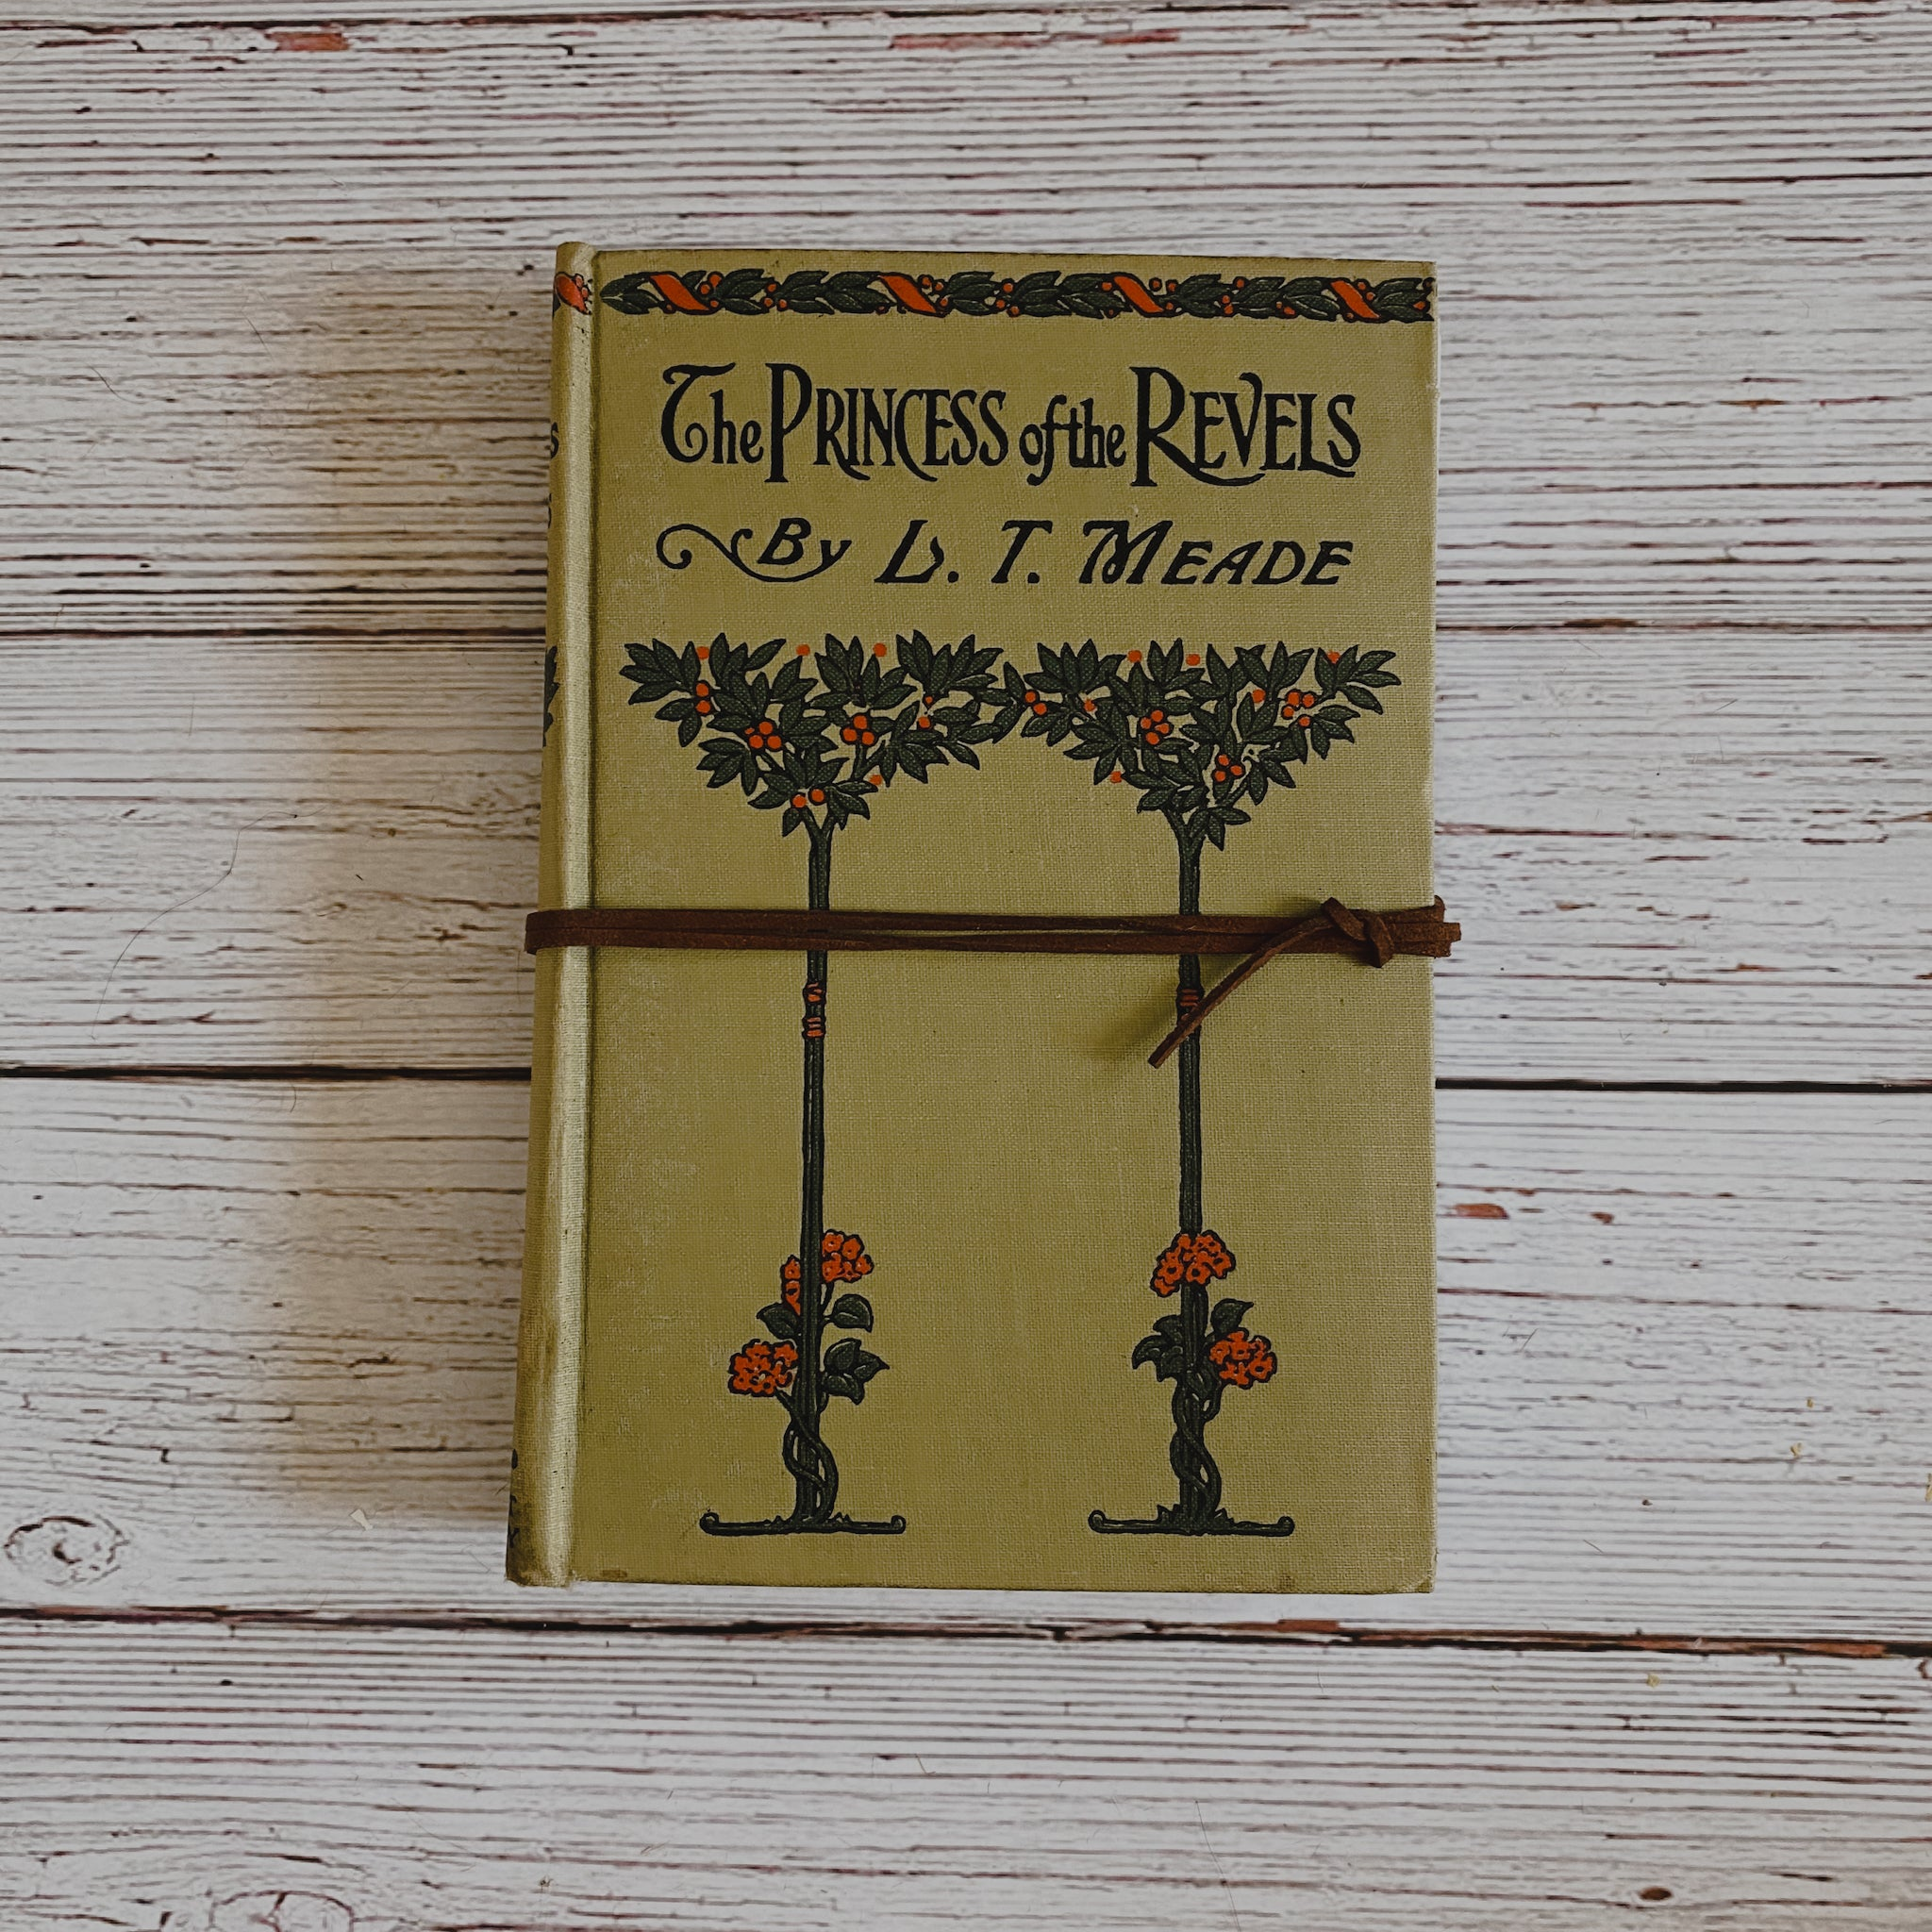 The Princess of the Revels